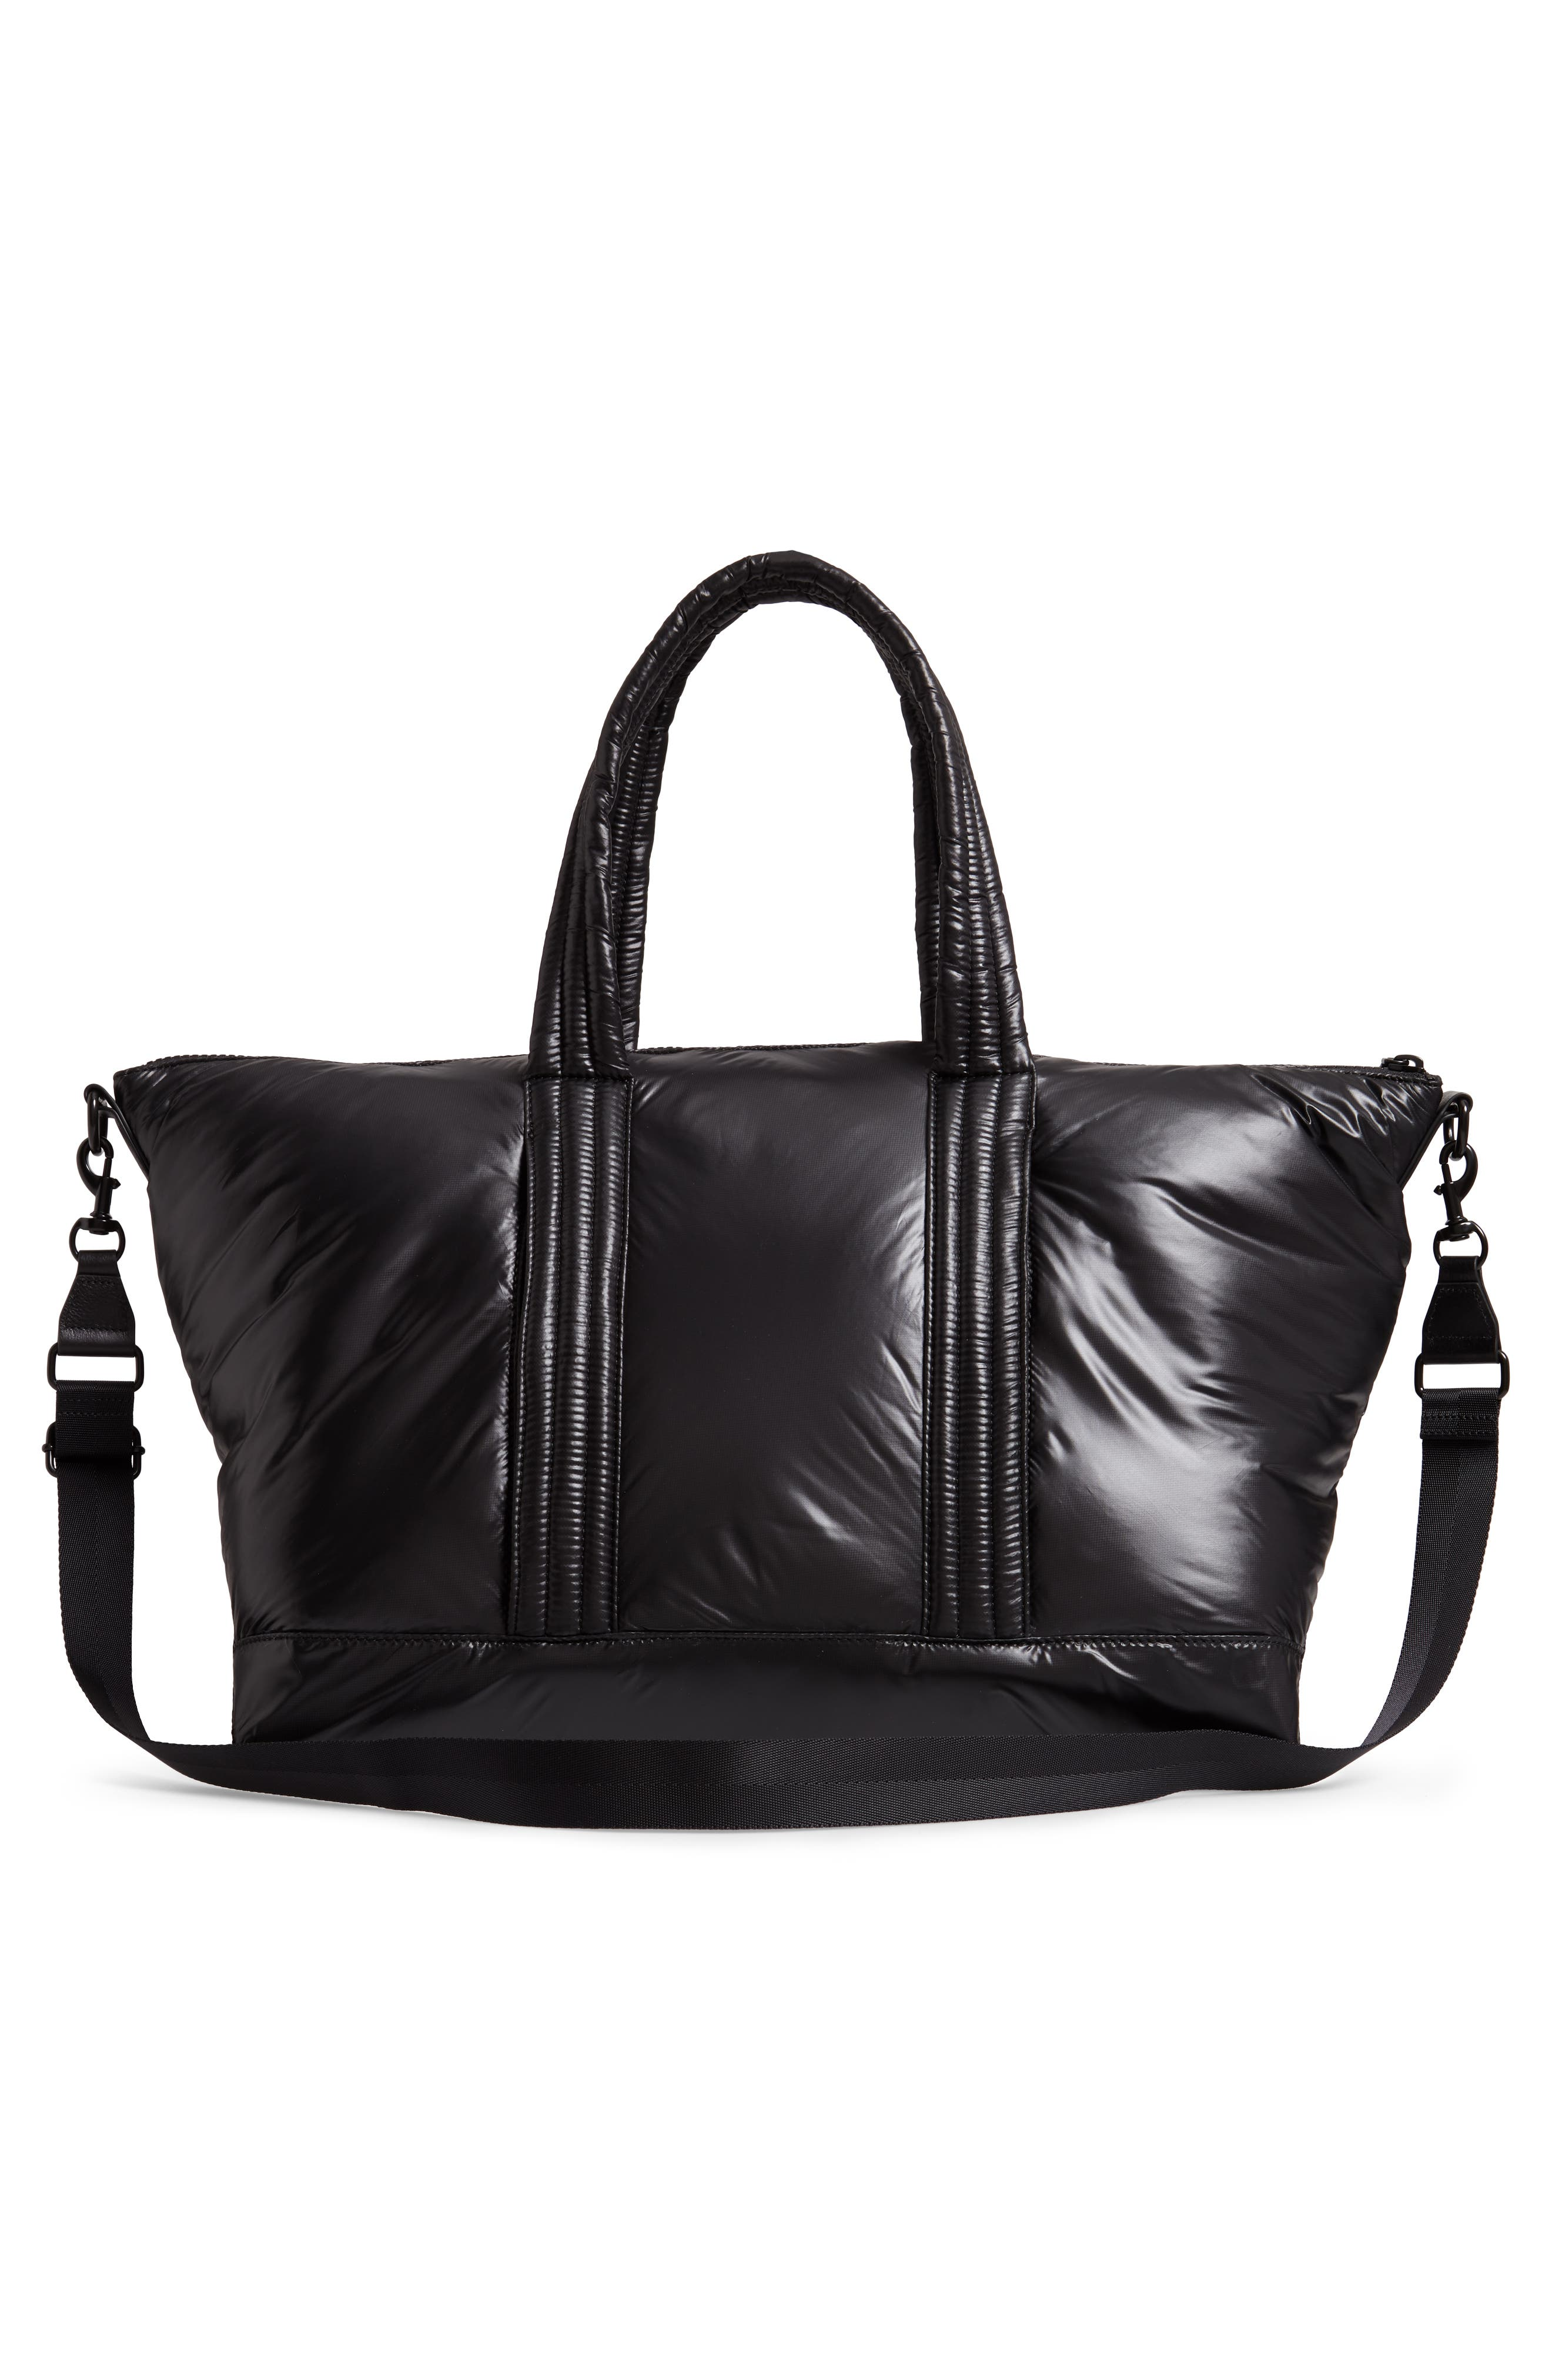 Puffy Nylon Duffel Bag,                             Alternate thumbnail 3, color,                             001